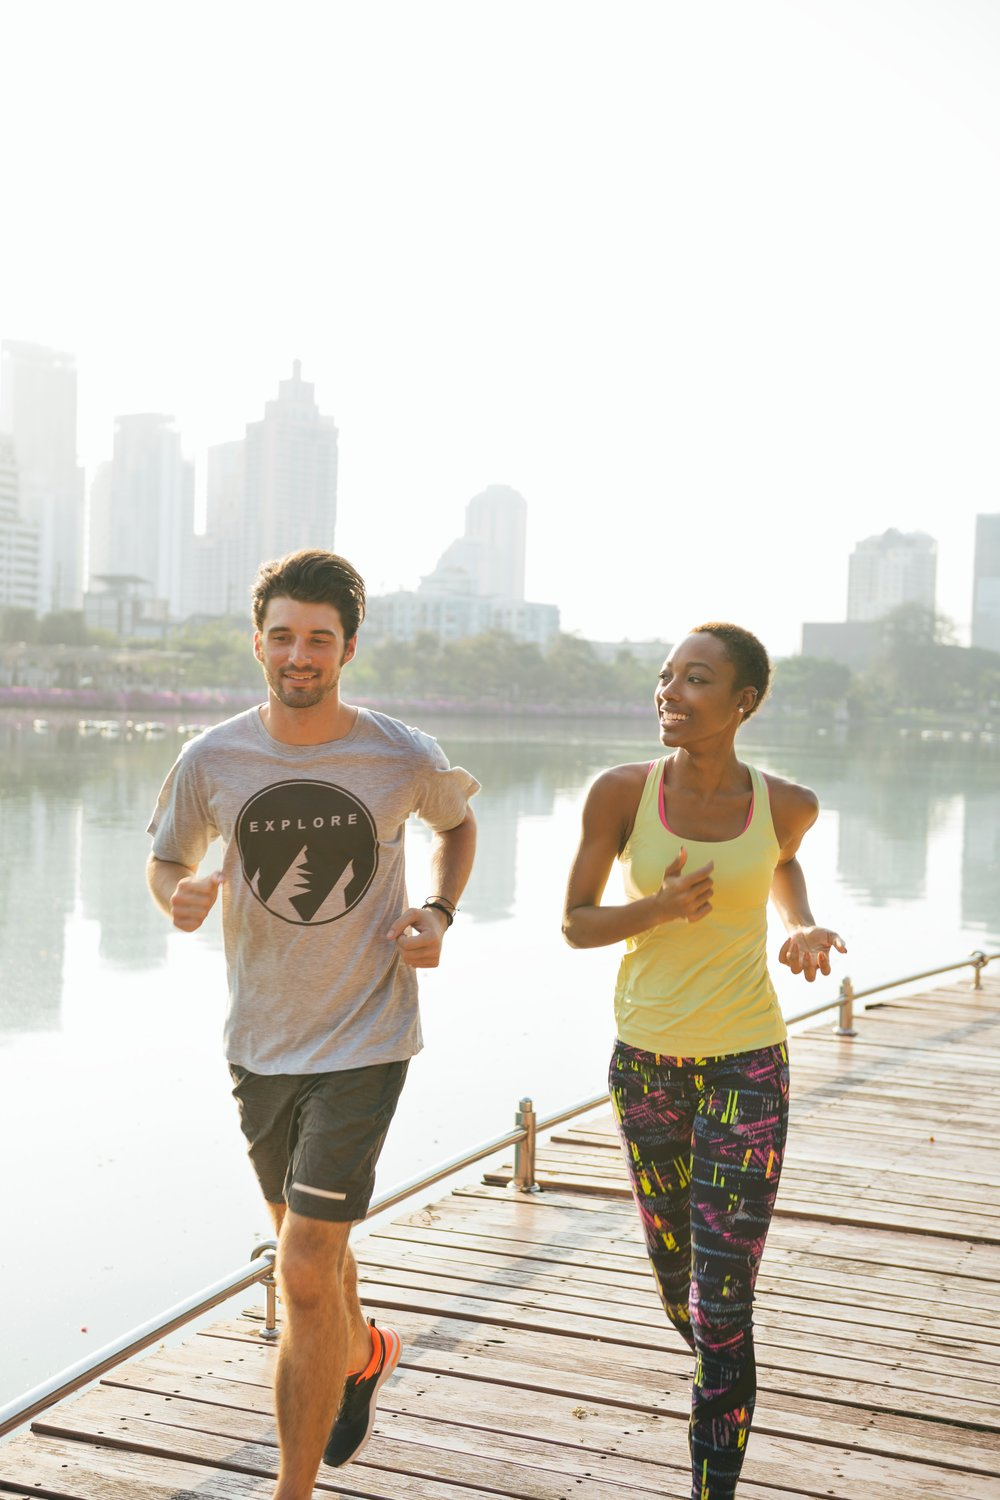 Go for a run during your lunch break if you have a busy schedule